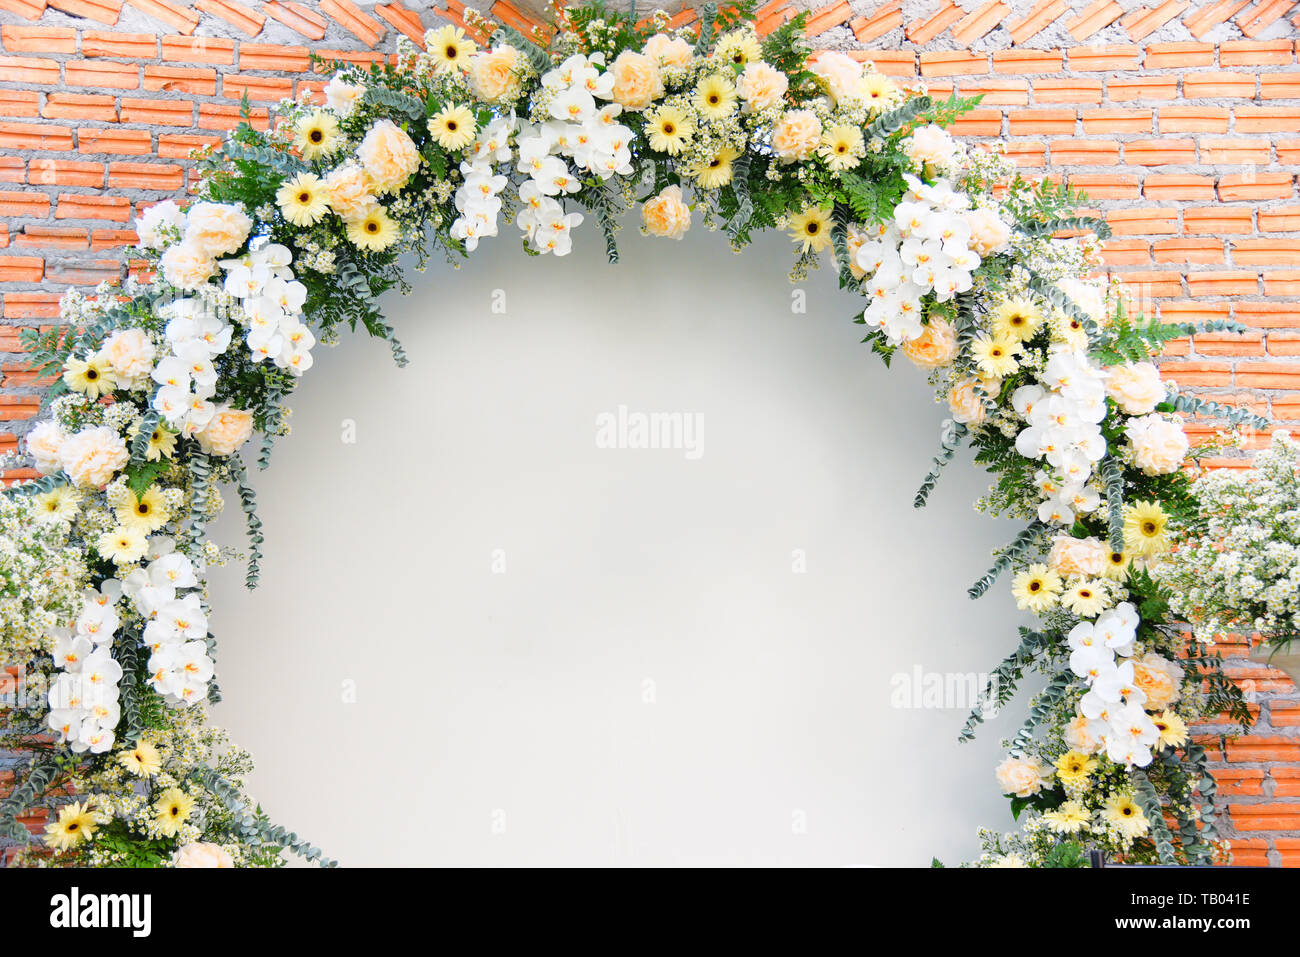 Backdrop Wedding Flower Arch Decoration Beautiful Flowers Bouqet White And Yellow Wedding Background Chrysanthemum And Orchid On Brick Wall Stock Photo Alamy